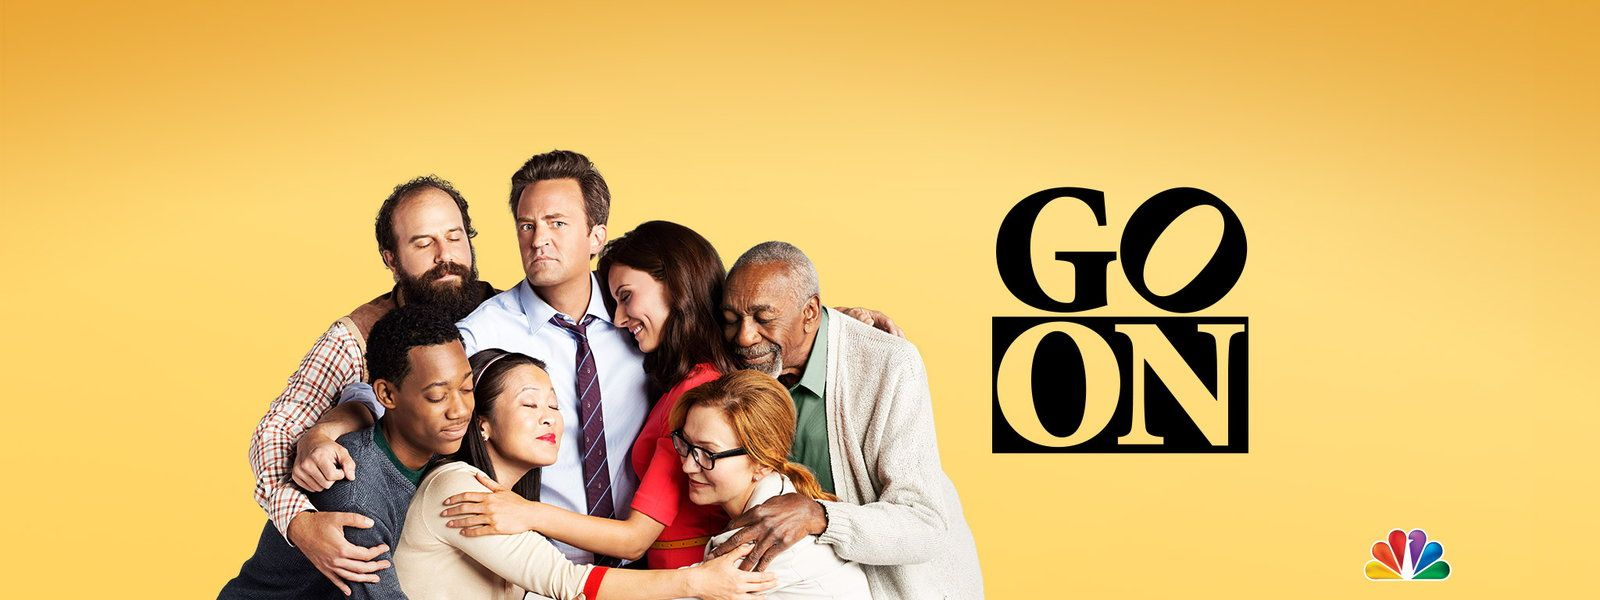 Go On is the next comedy starring Mathew Perry as a radio